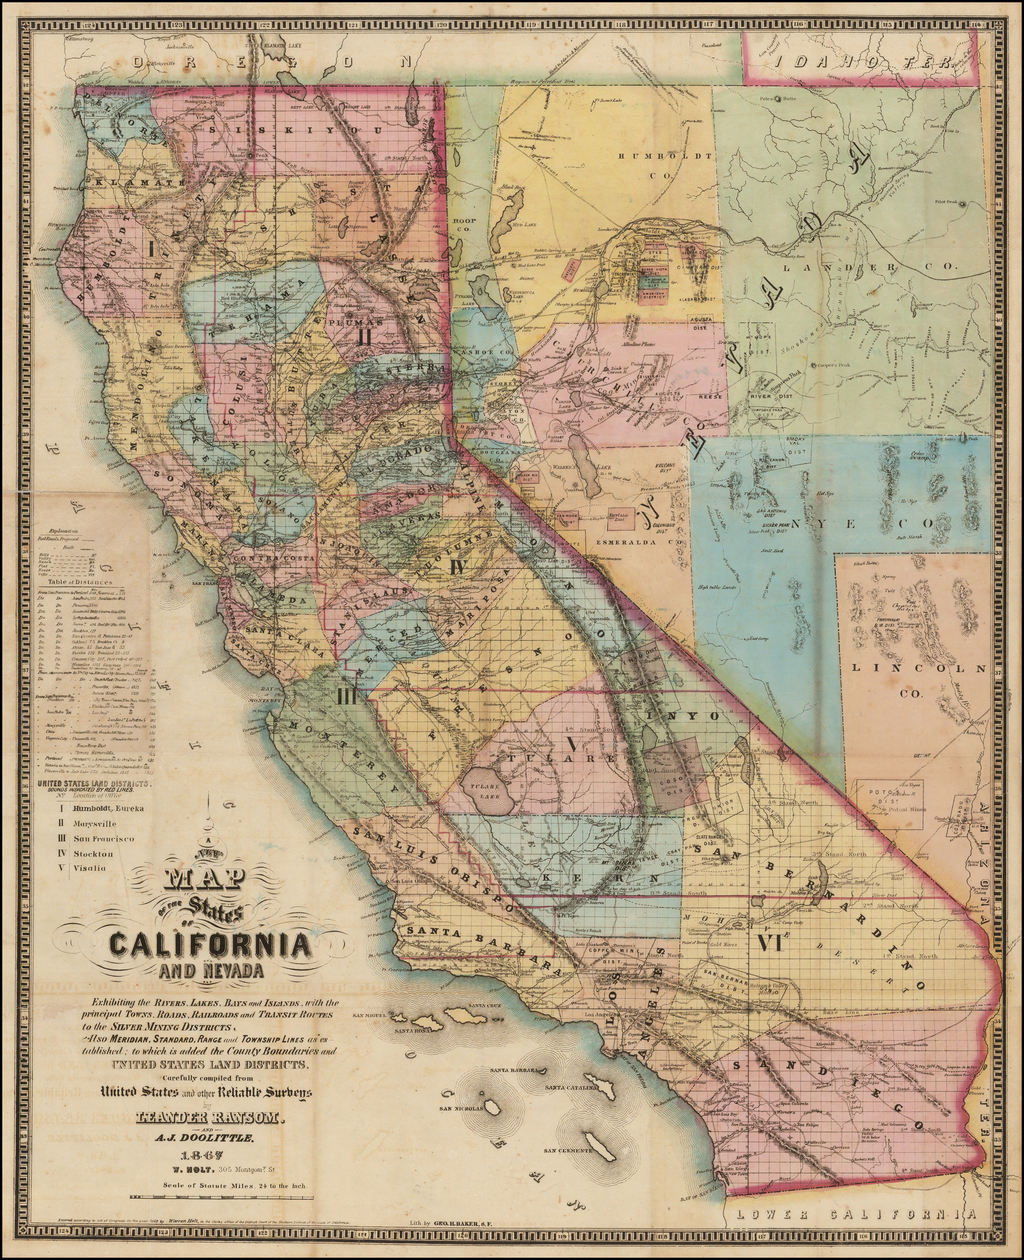 A New Map of the States of California and Nevada ... Map Of Lakes Nevada County Ca on map of paicines ca, map of likely ca, map of california ca, map of fulton ca, map of santa fe springs ca, map of forbestown ca, map of cedarville ca, map of gold run ca, map of hamilton city ca, map of south lake tahoe ca, map of doyle ca, map of newell ca, map of rancho palos verdes ca, map of soulsbyville ca, map of downieville ca, map of big bear lake ca, map of alta sierra ca, map of san juan capistrano ca, map of norden ca, map of bieber ca,